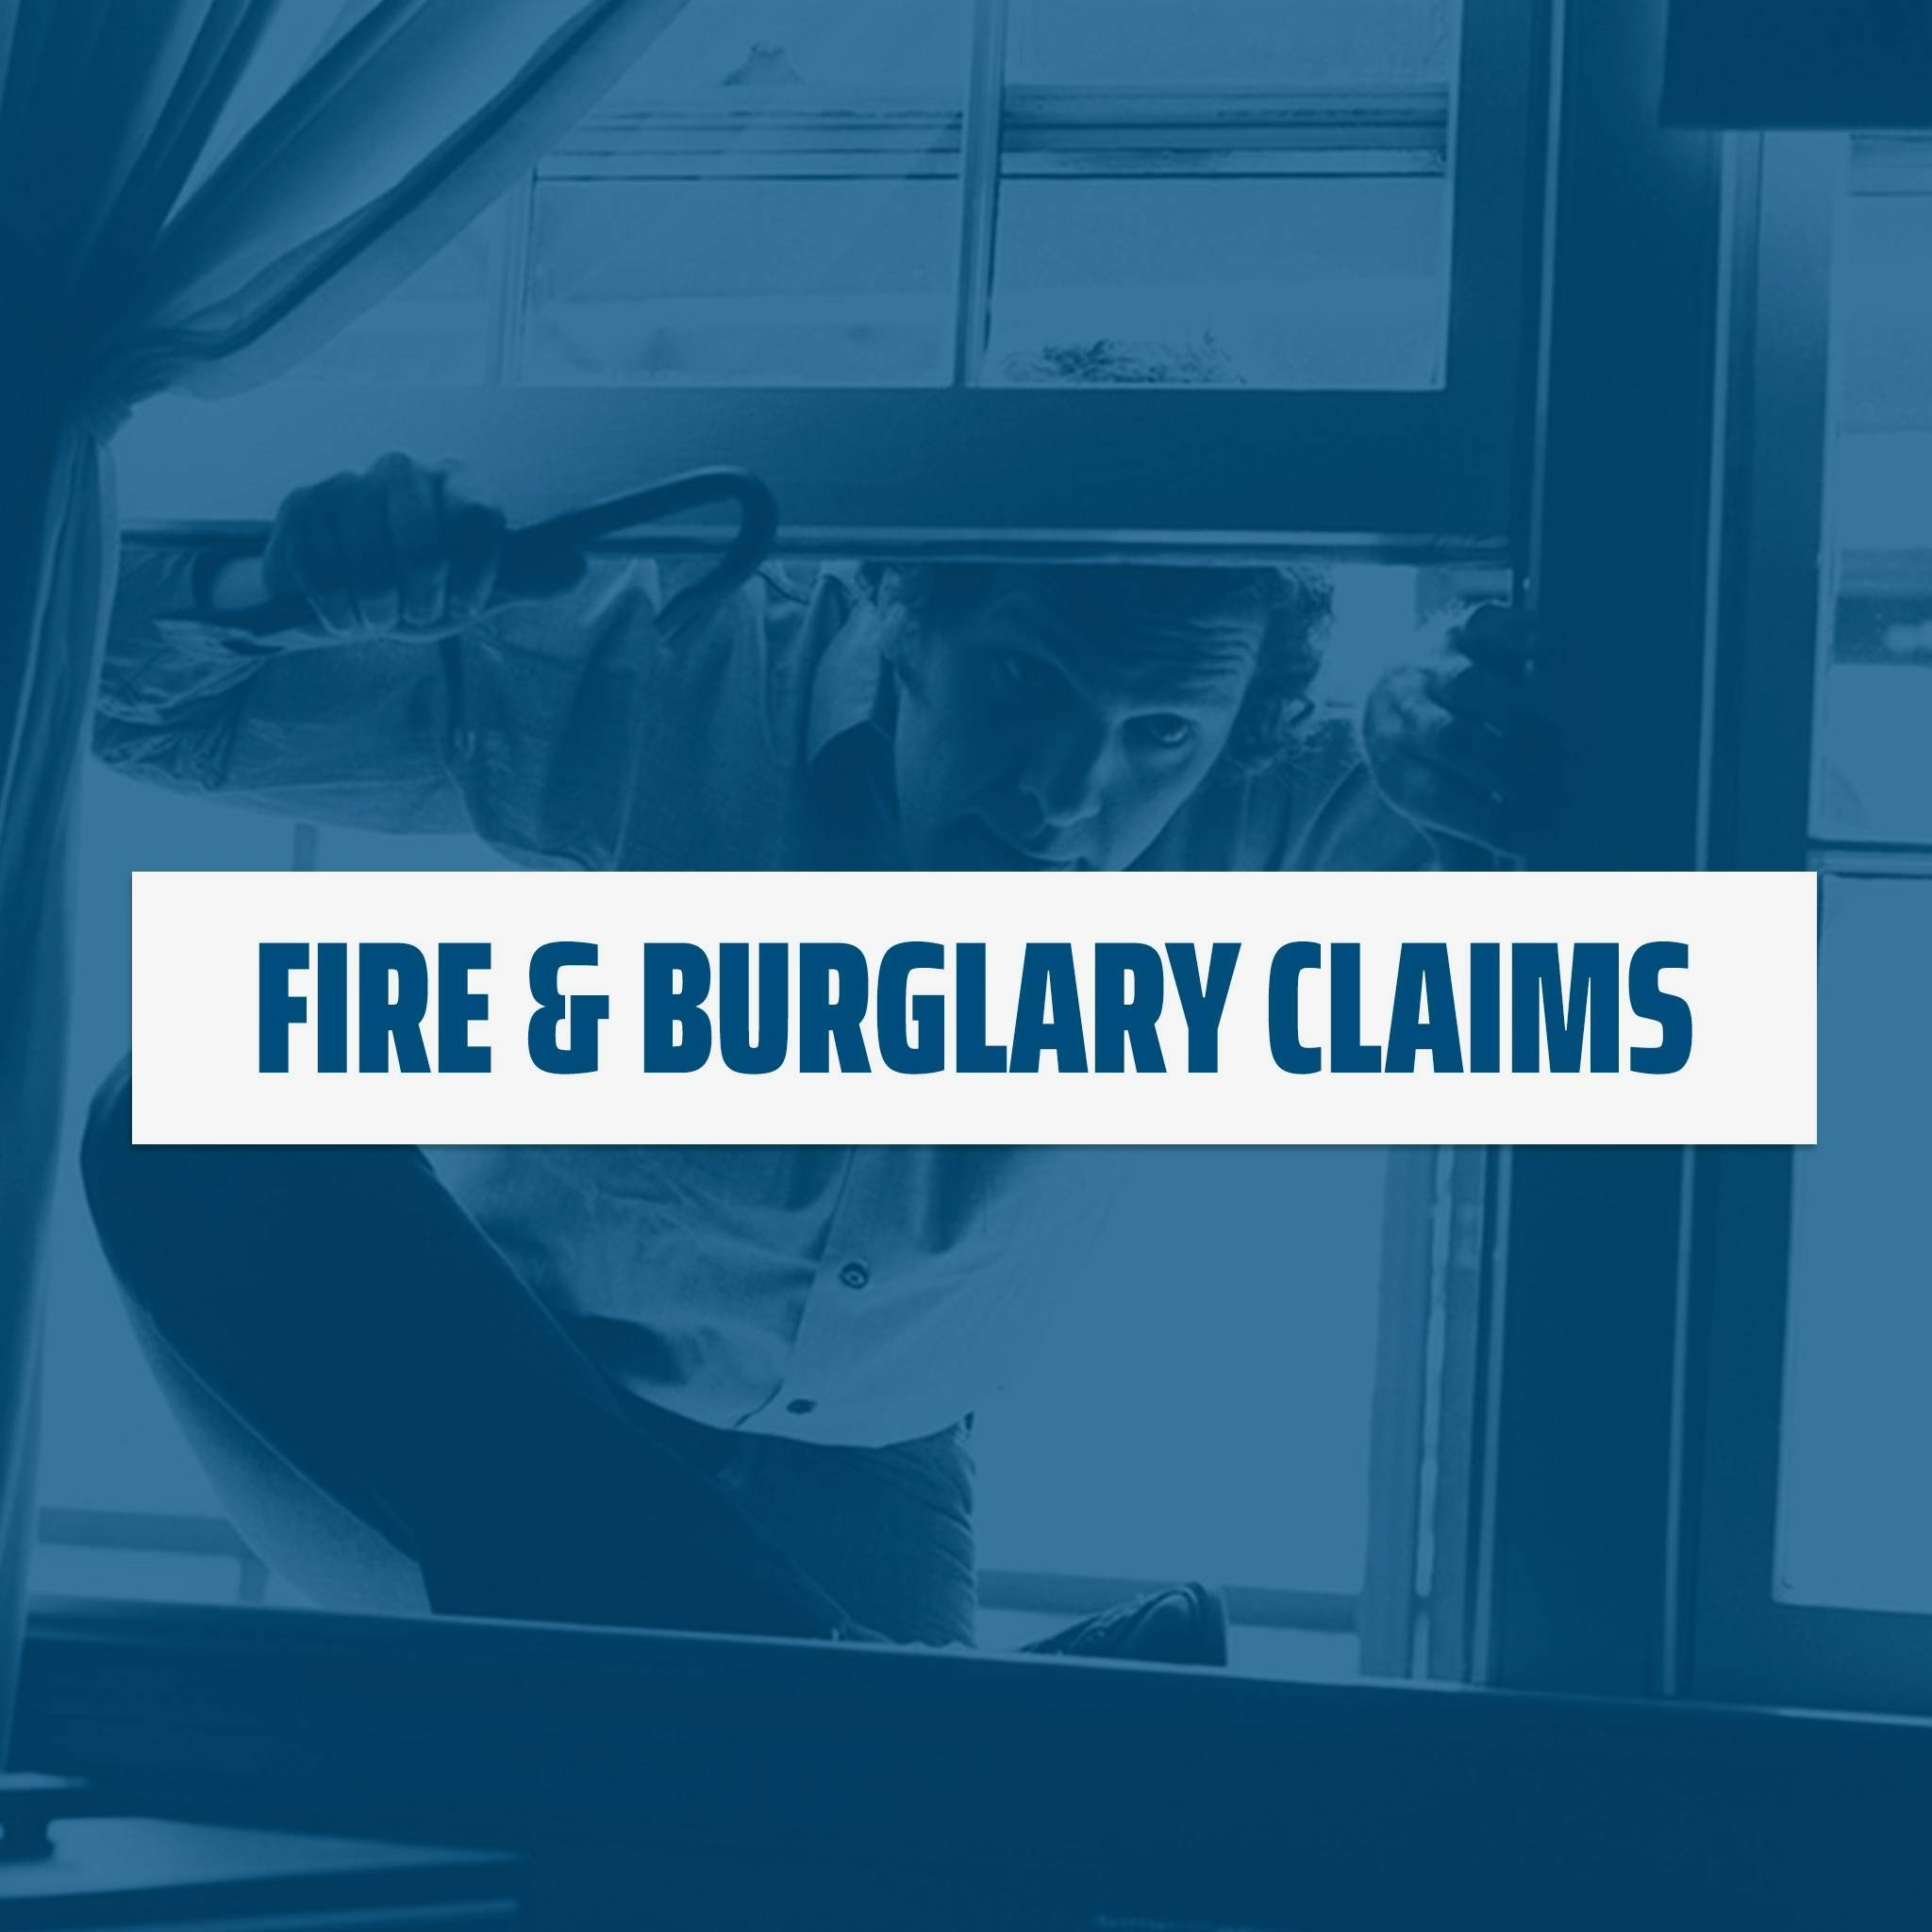 Fire and Burglary Claims